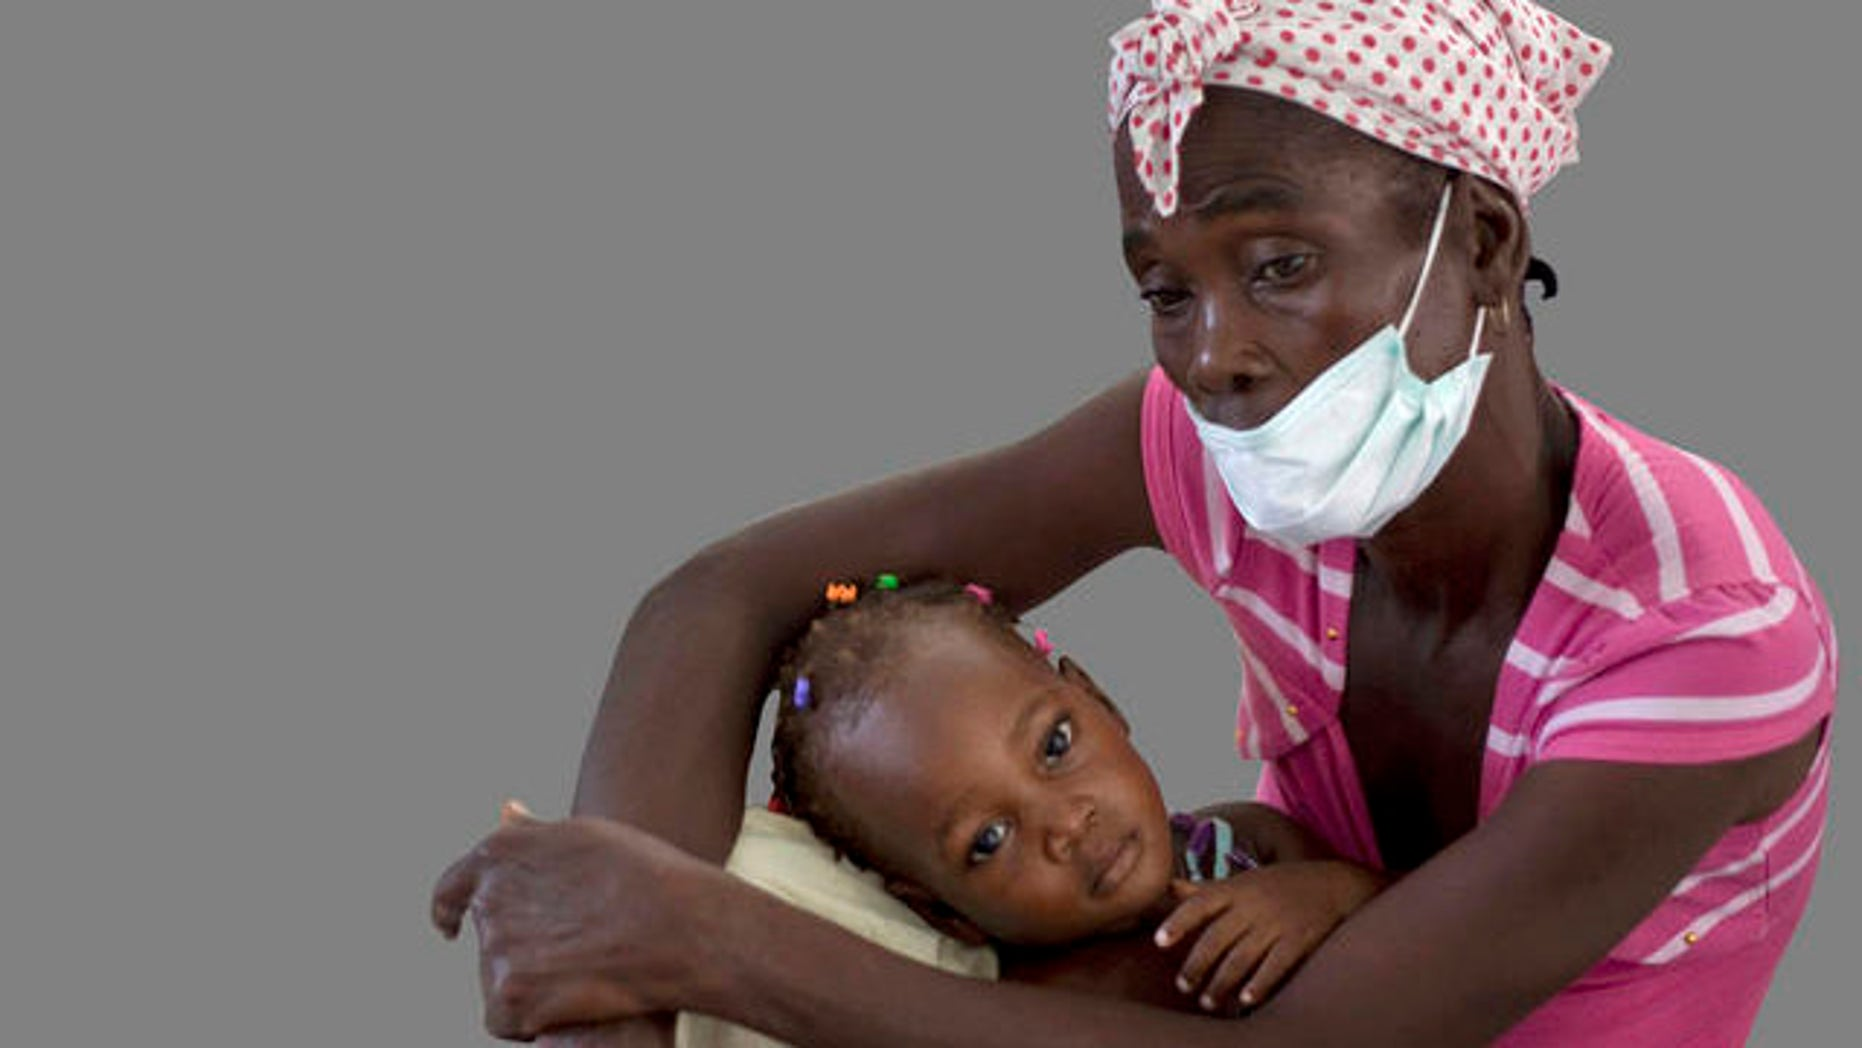 A woman holds her young daughter wile receiving medical attention at St. Nicholas hospital in Saint Marc, Haiti, Friday, Oct. 22, 2010. An outbreak of cholera in rural central Haiti has killed at least 142 people and sickened hundreds more who overwhelmed the hospital in Saint Marc seeking treatment. (AP Photo/Ramon Espinosa)